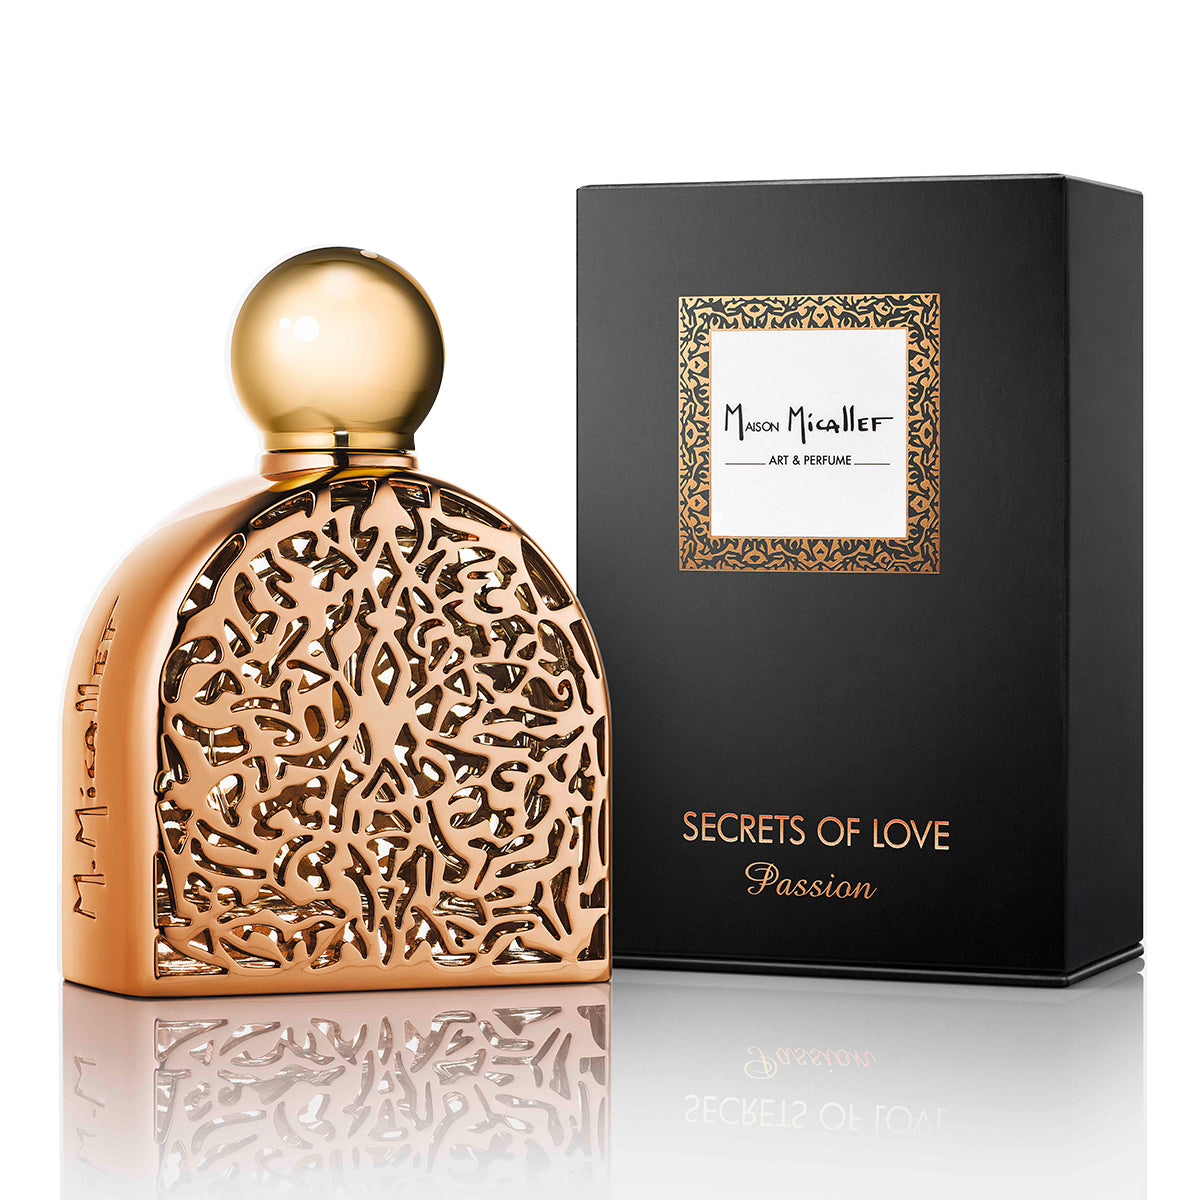 Secret of Love Passion - Micallef - EDP 75ml